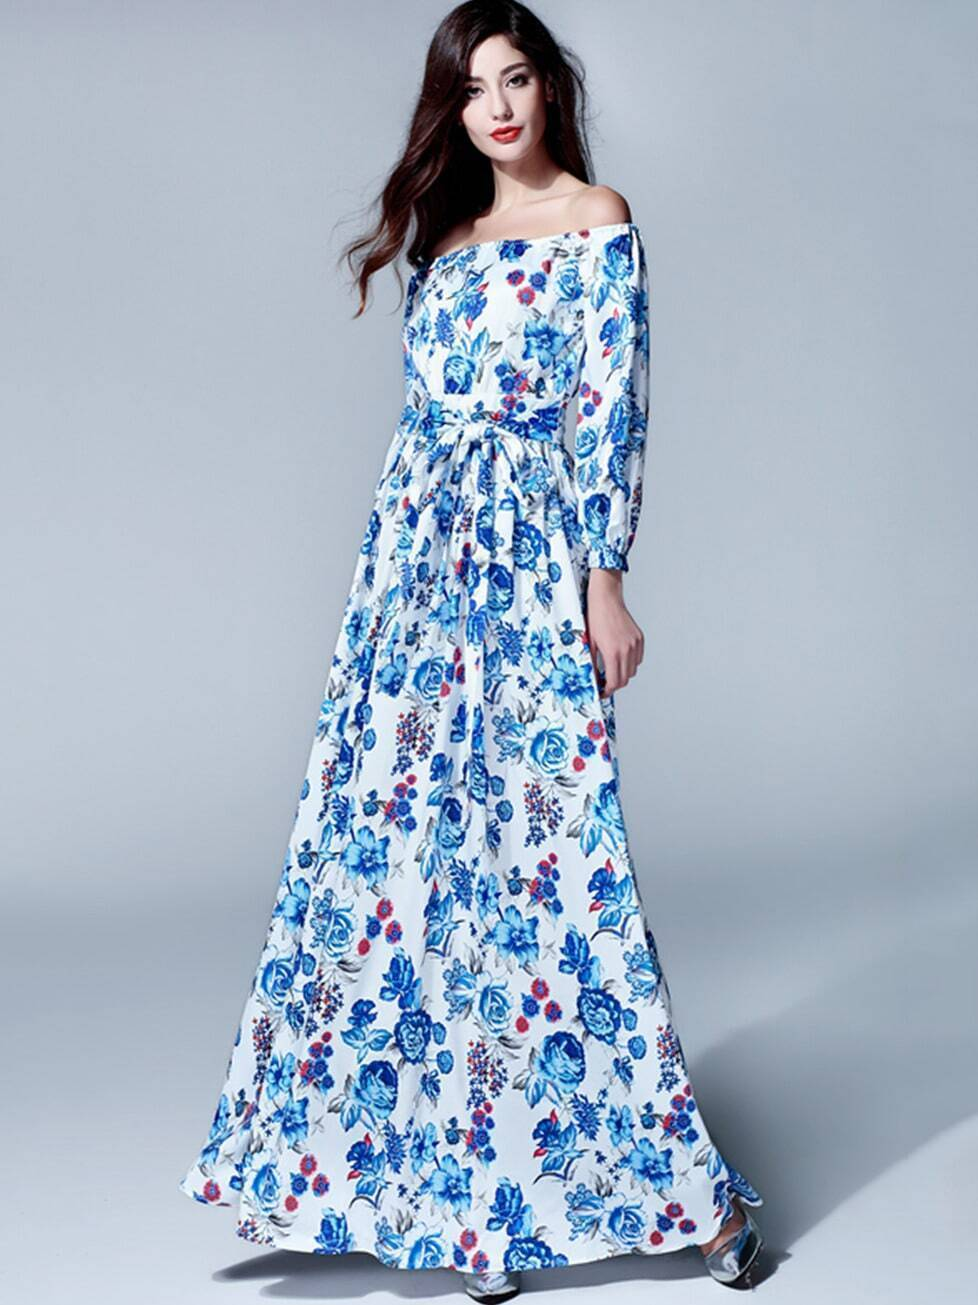 Blue Off The Shoulder Length Sleeve Print Tie-Waist Dress